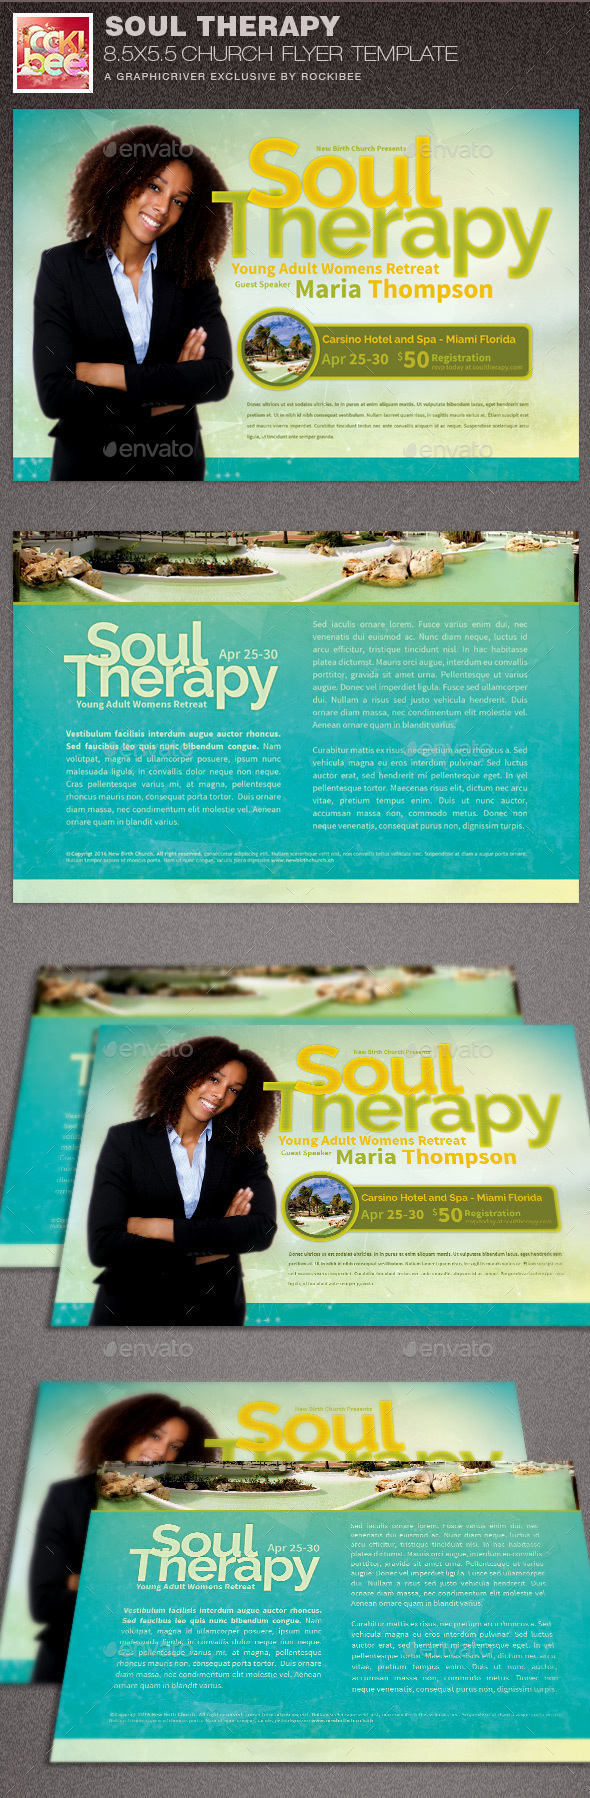 Soul Therapy Church Flyer Template - Church Flyers